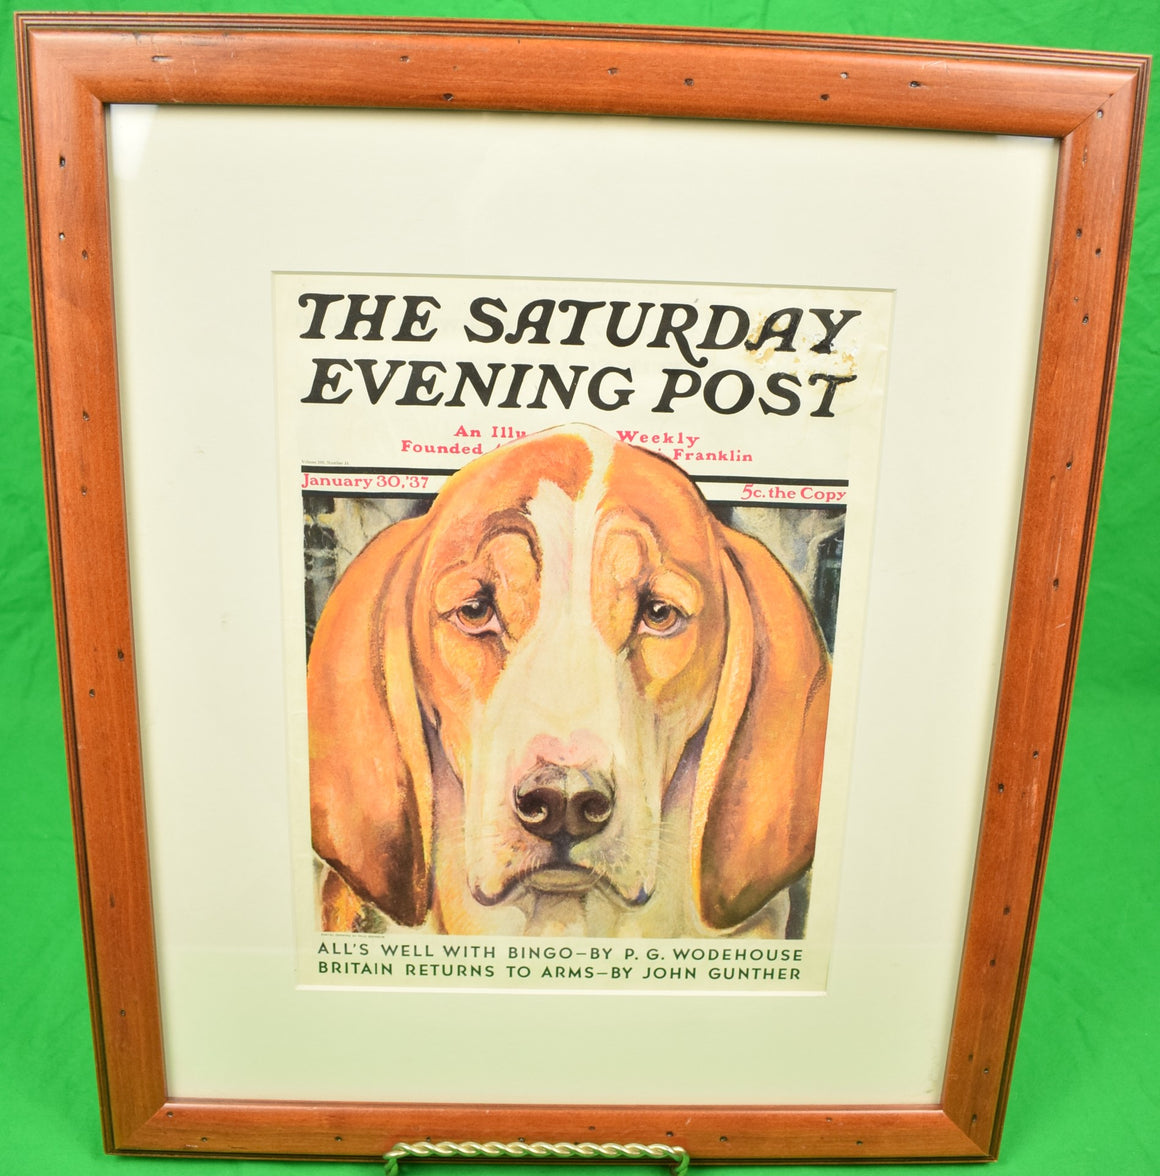 The Saturday Evening Post January 30, '37 Magazine Cover of a Fox-Hound by Paul Branson